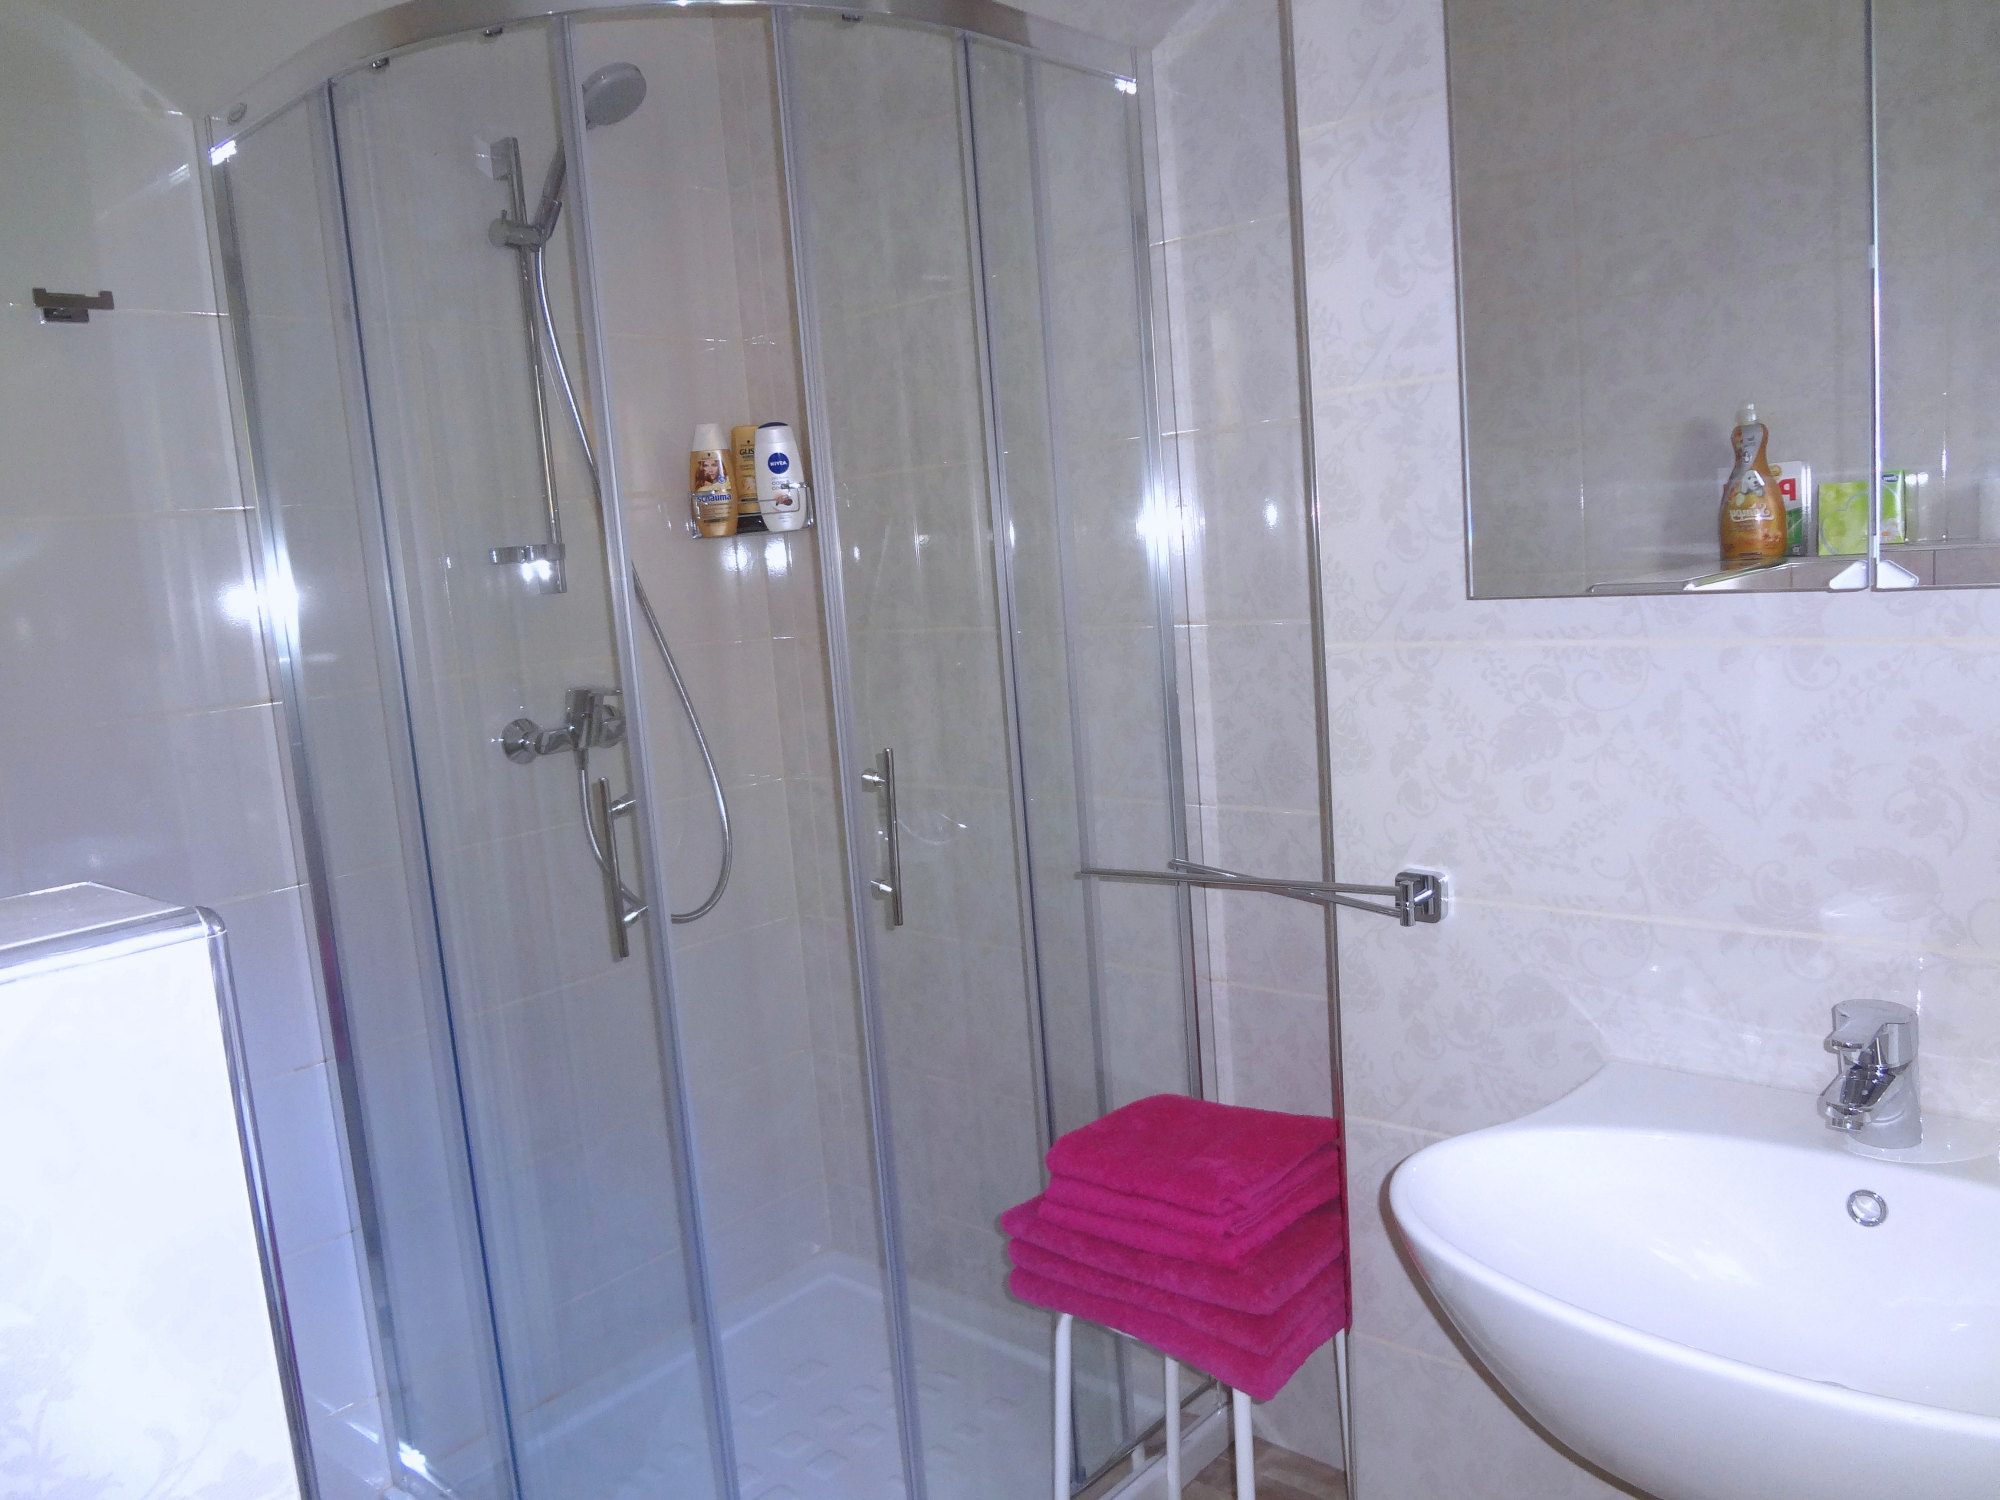 A glass shower stall in the bathroom of Apartments Fine Stay in the Gorenjska region of Slovenia